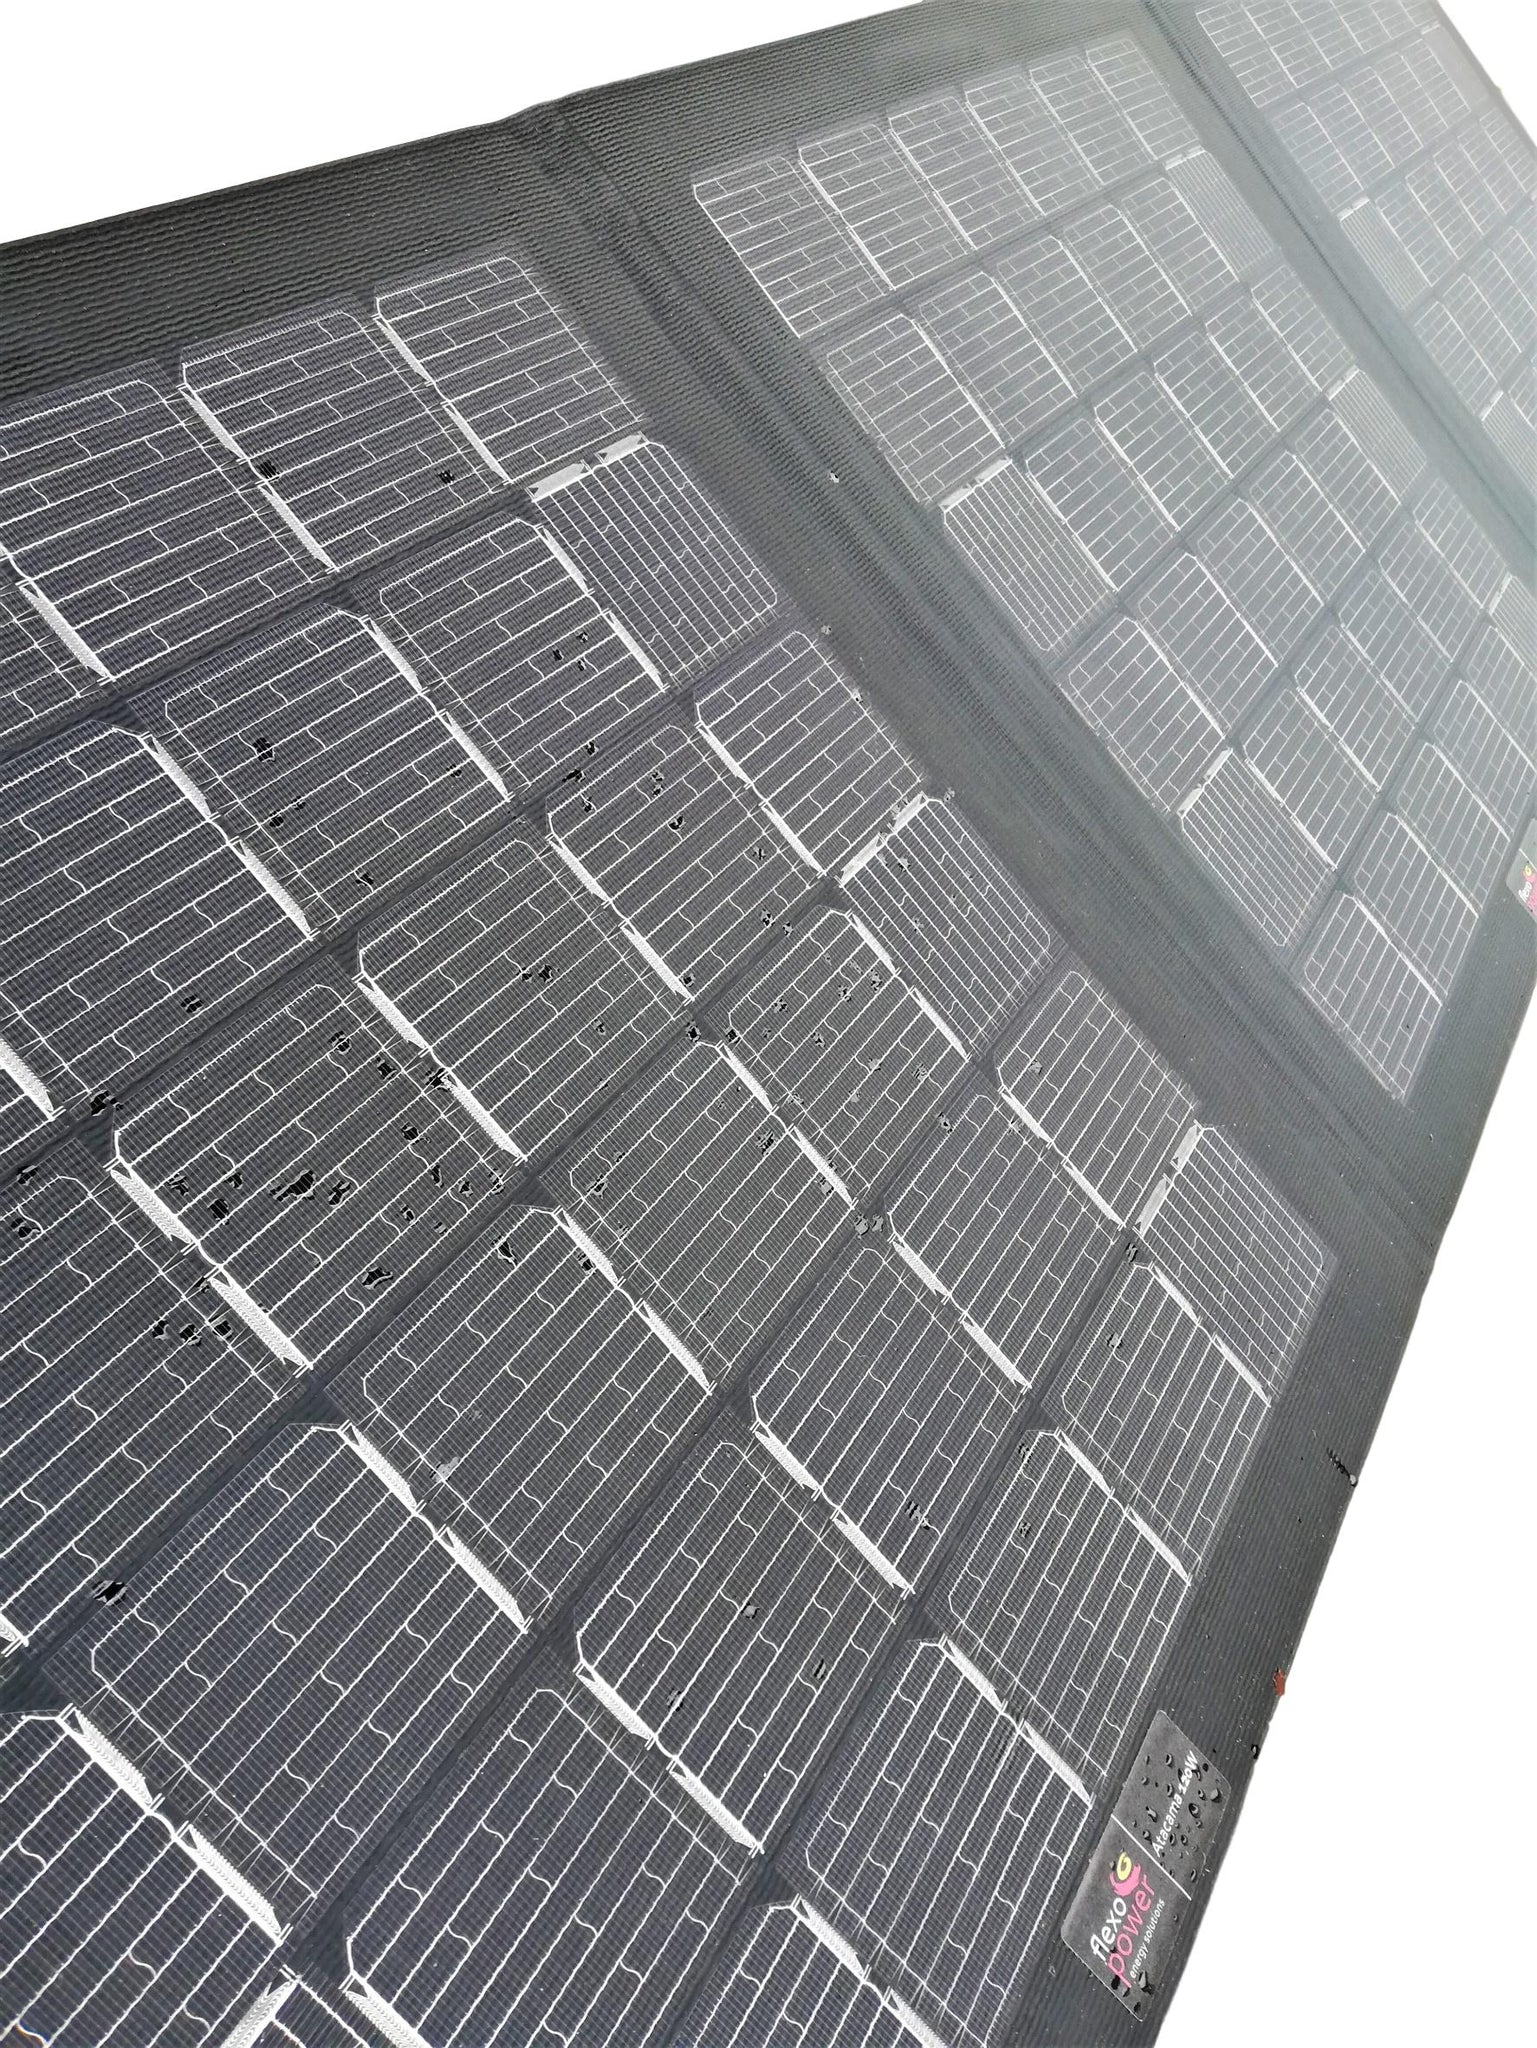 ATACAMA 120W MIL SPEC SOLAR MODUL BY FLEXOPOWER